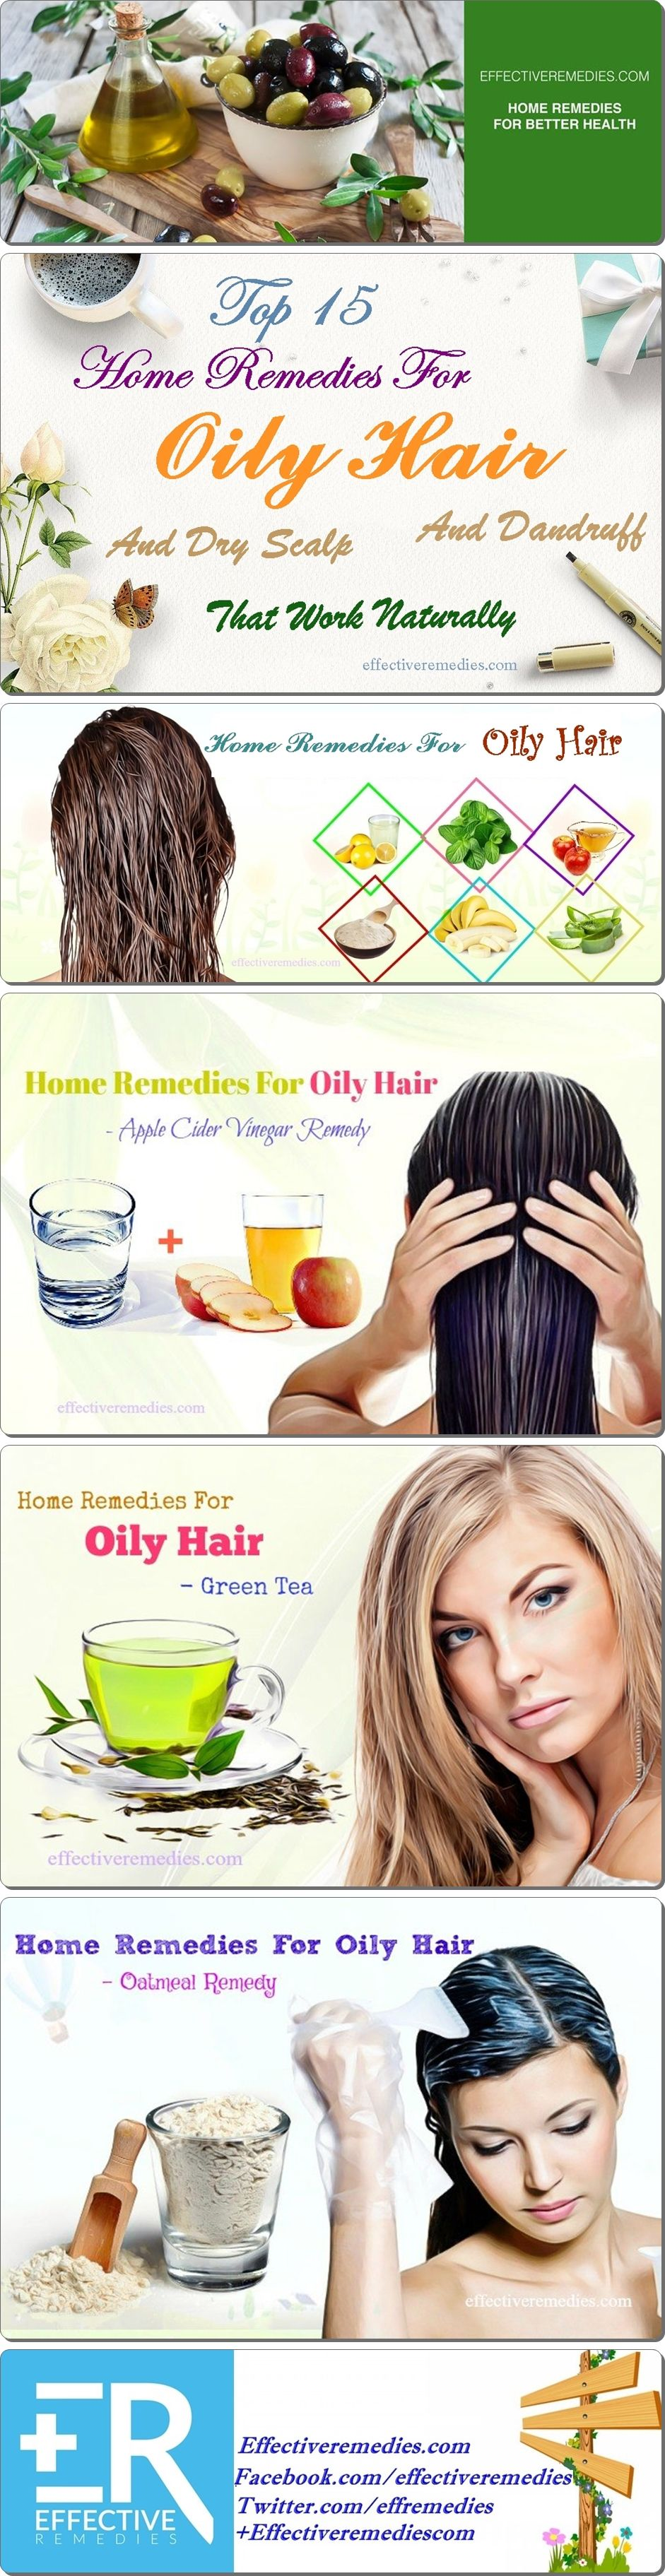 Top 17 Home Remedies For Oily Hair Dry Scalp & Dandruff ...